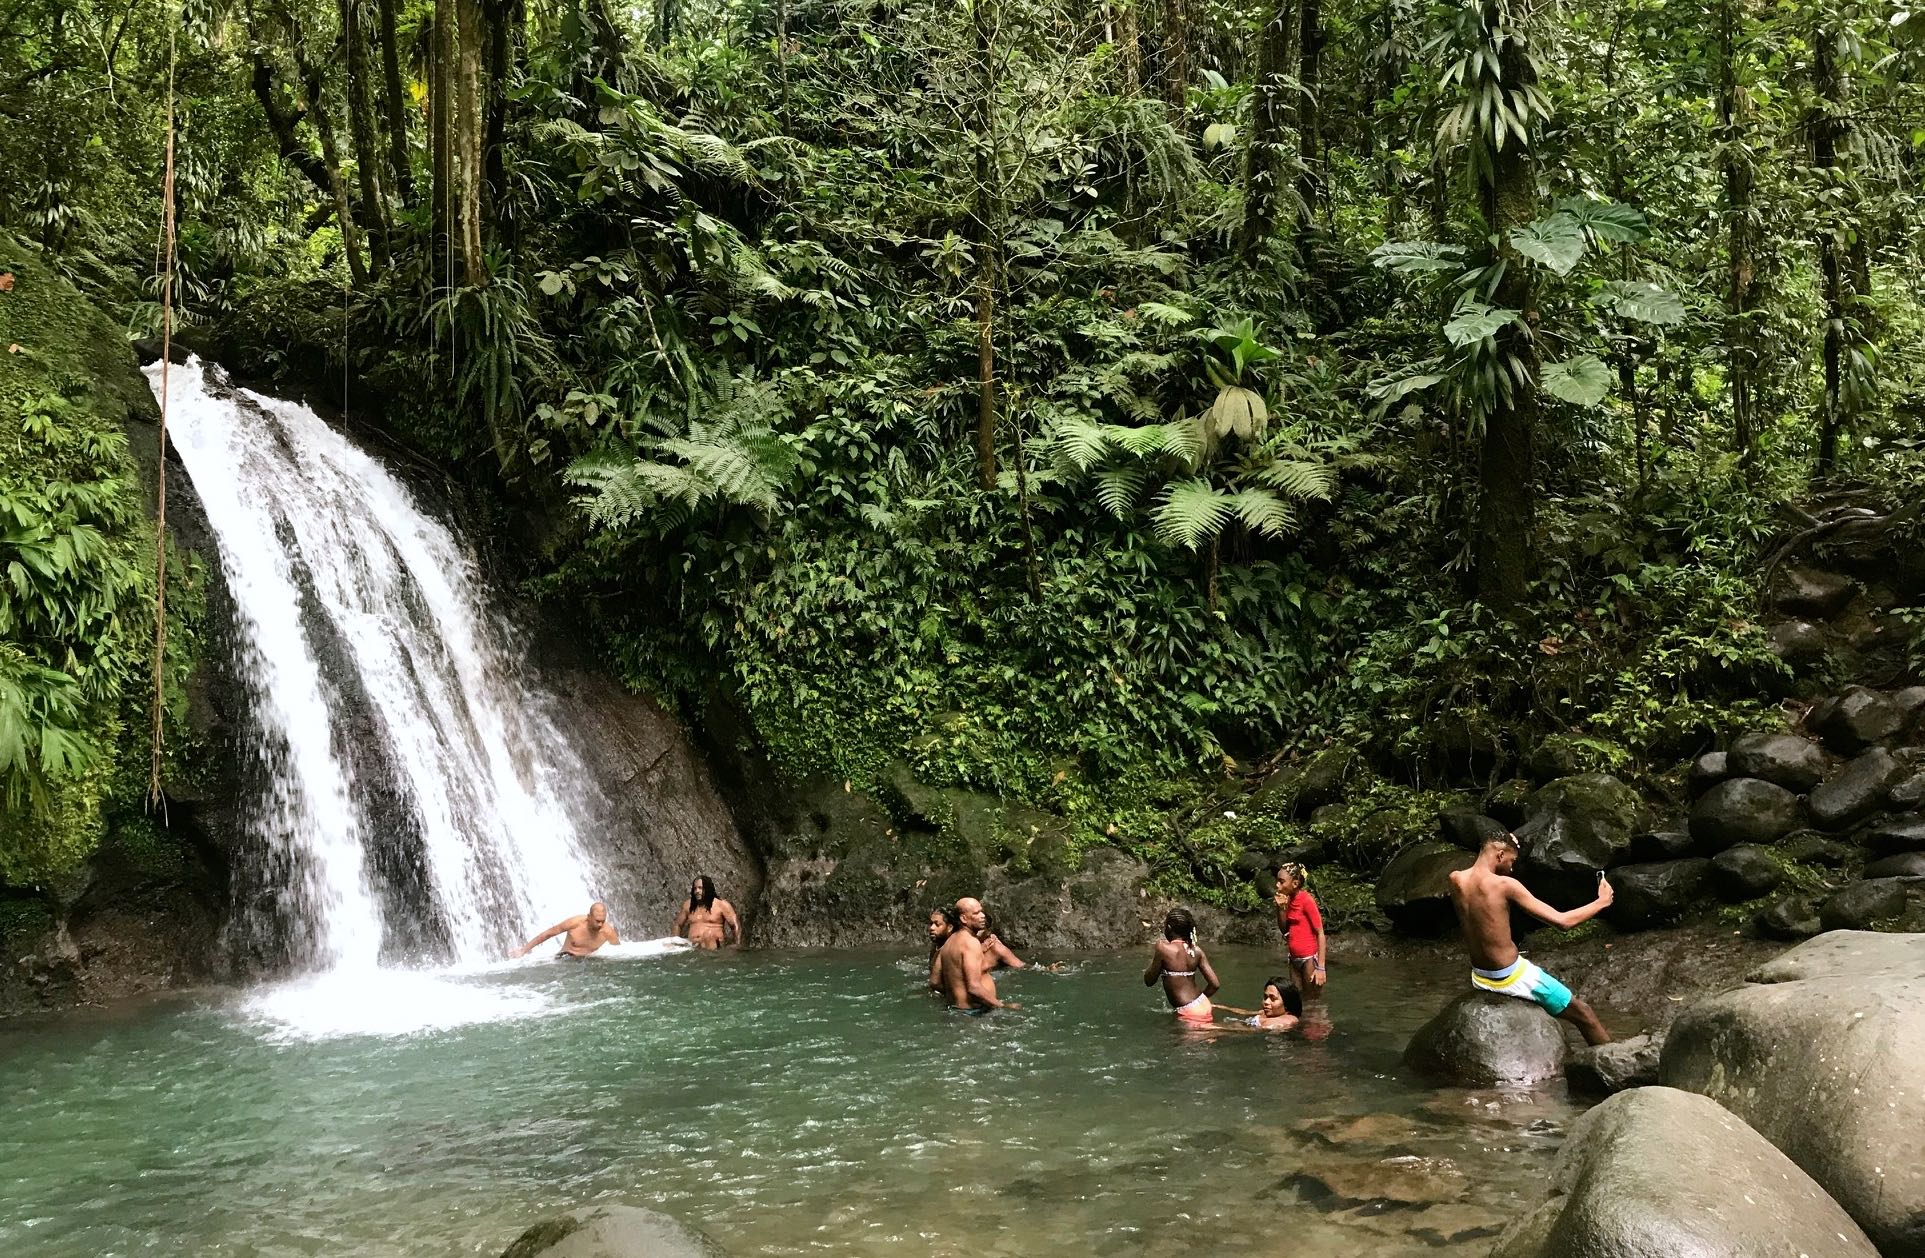 The Crayfish waterfall, in the Guadeloupe National Park, is very popular with locals and tourists alike.